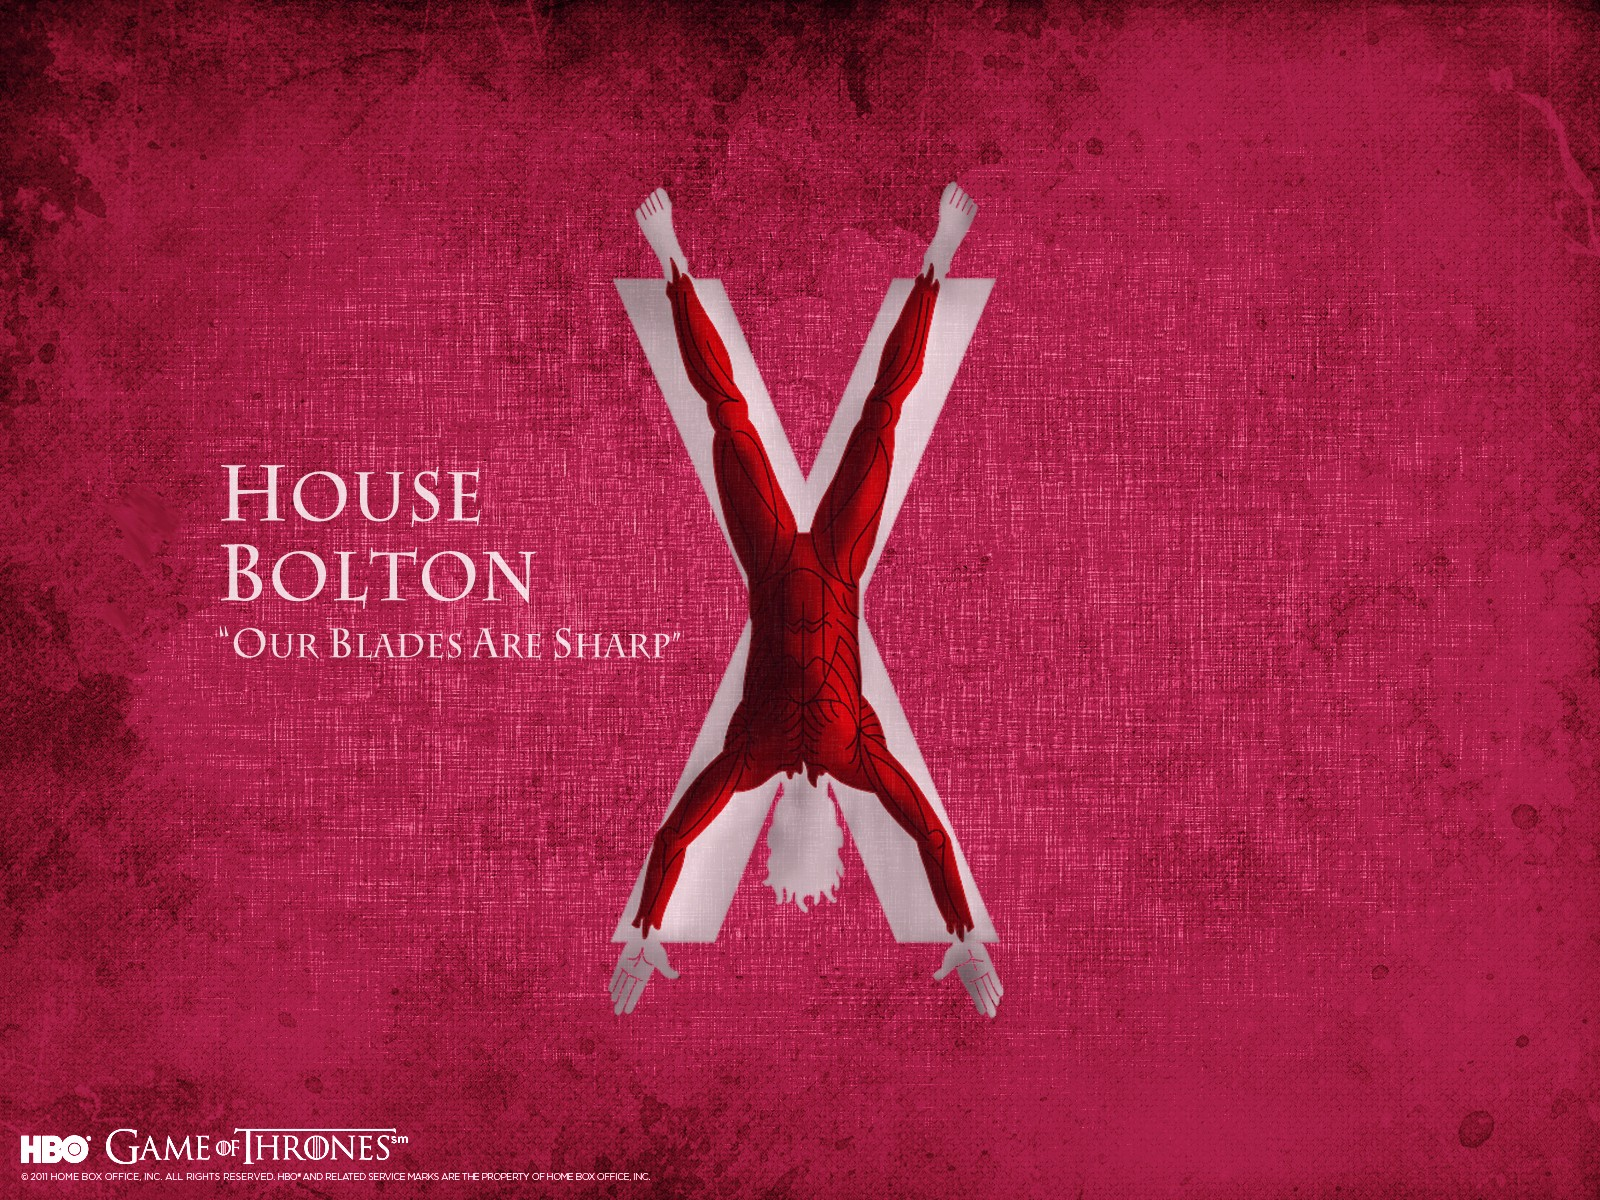 House Bolton Game Of Thrones Wallpaper Pinterest Gaming 1600x1200